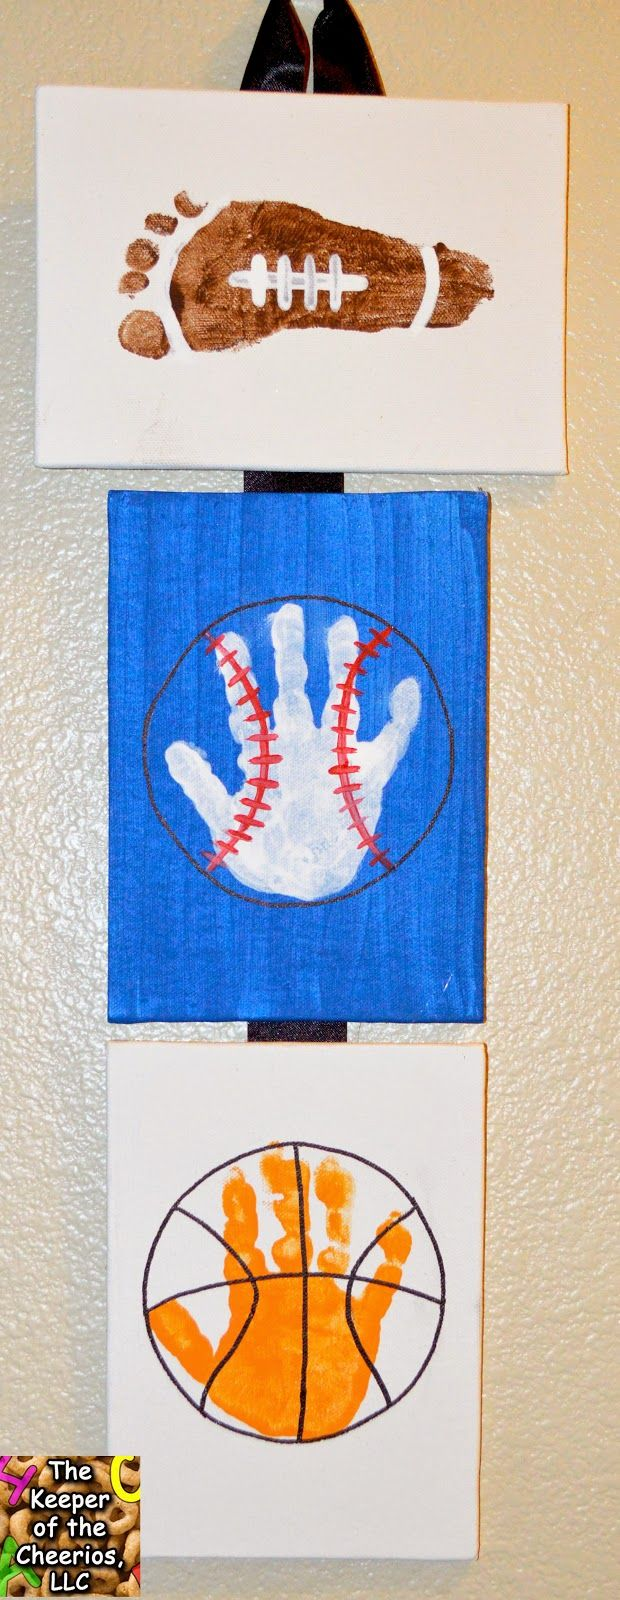 Arts and crafts prints - Sports Footprints And Hand Prints